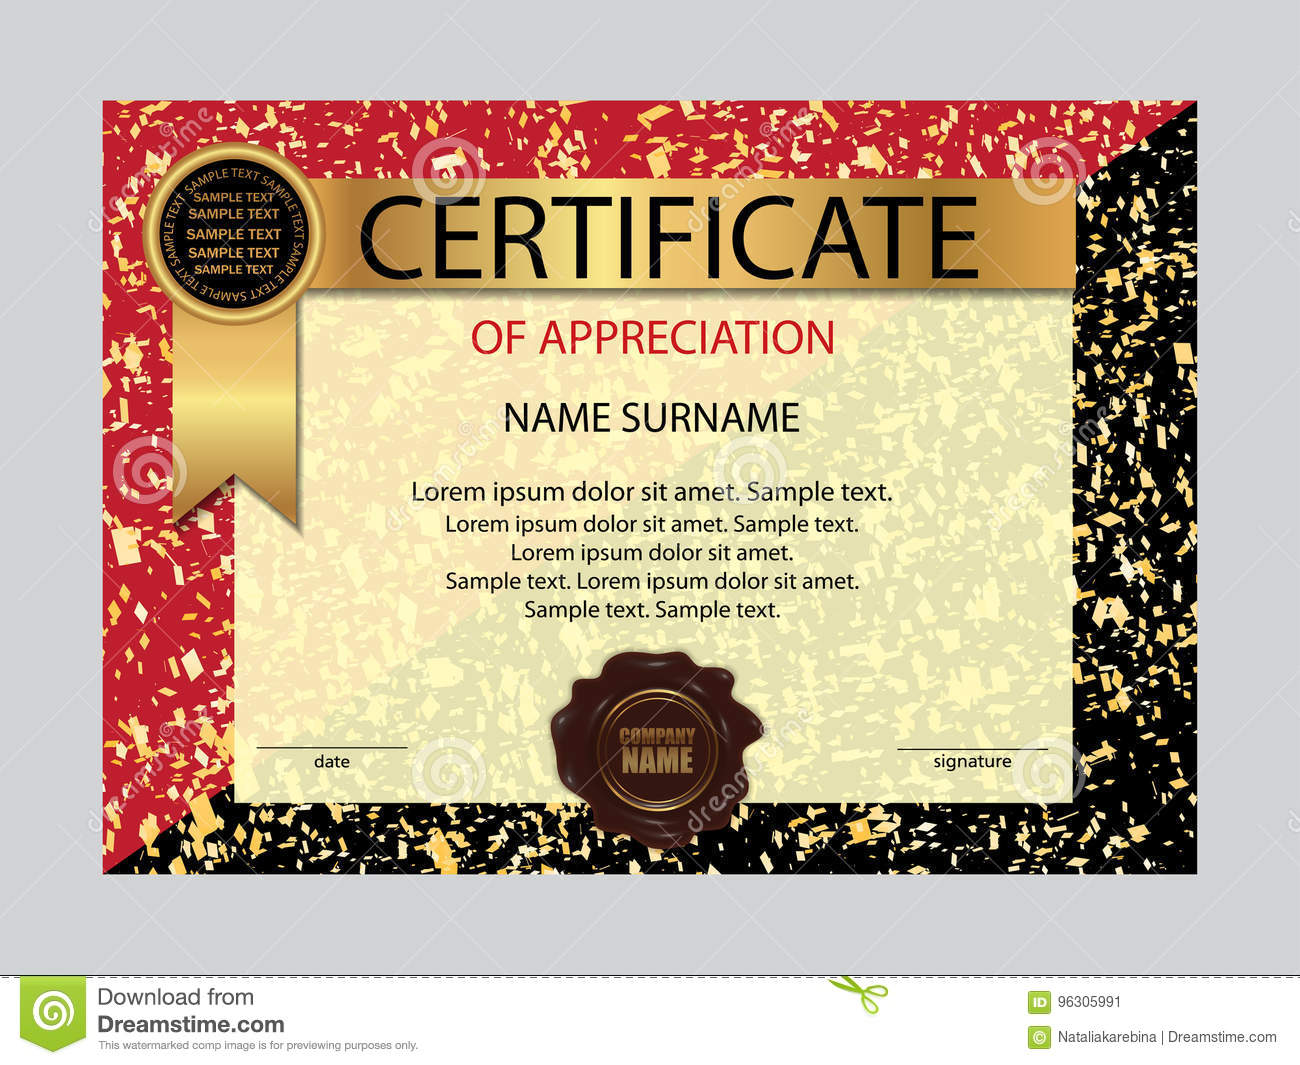 Free printable funny certificate templates images templates free printable funny certificate templates images templates free printable funny certificate templates gallery templates free printable yadclub Gallery